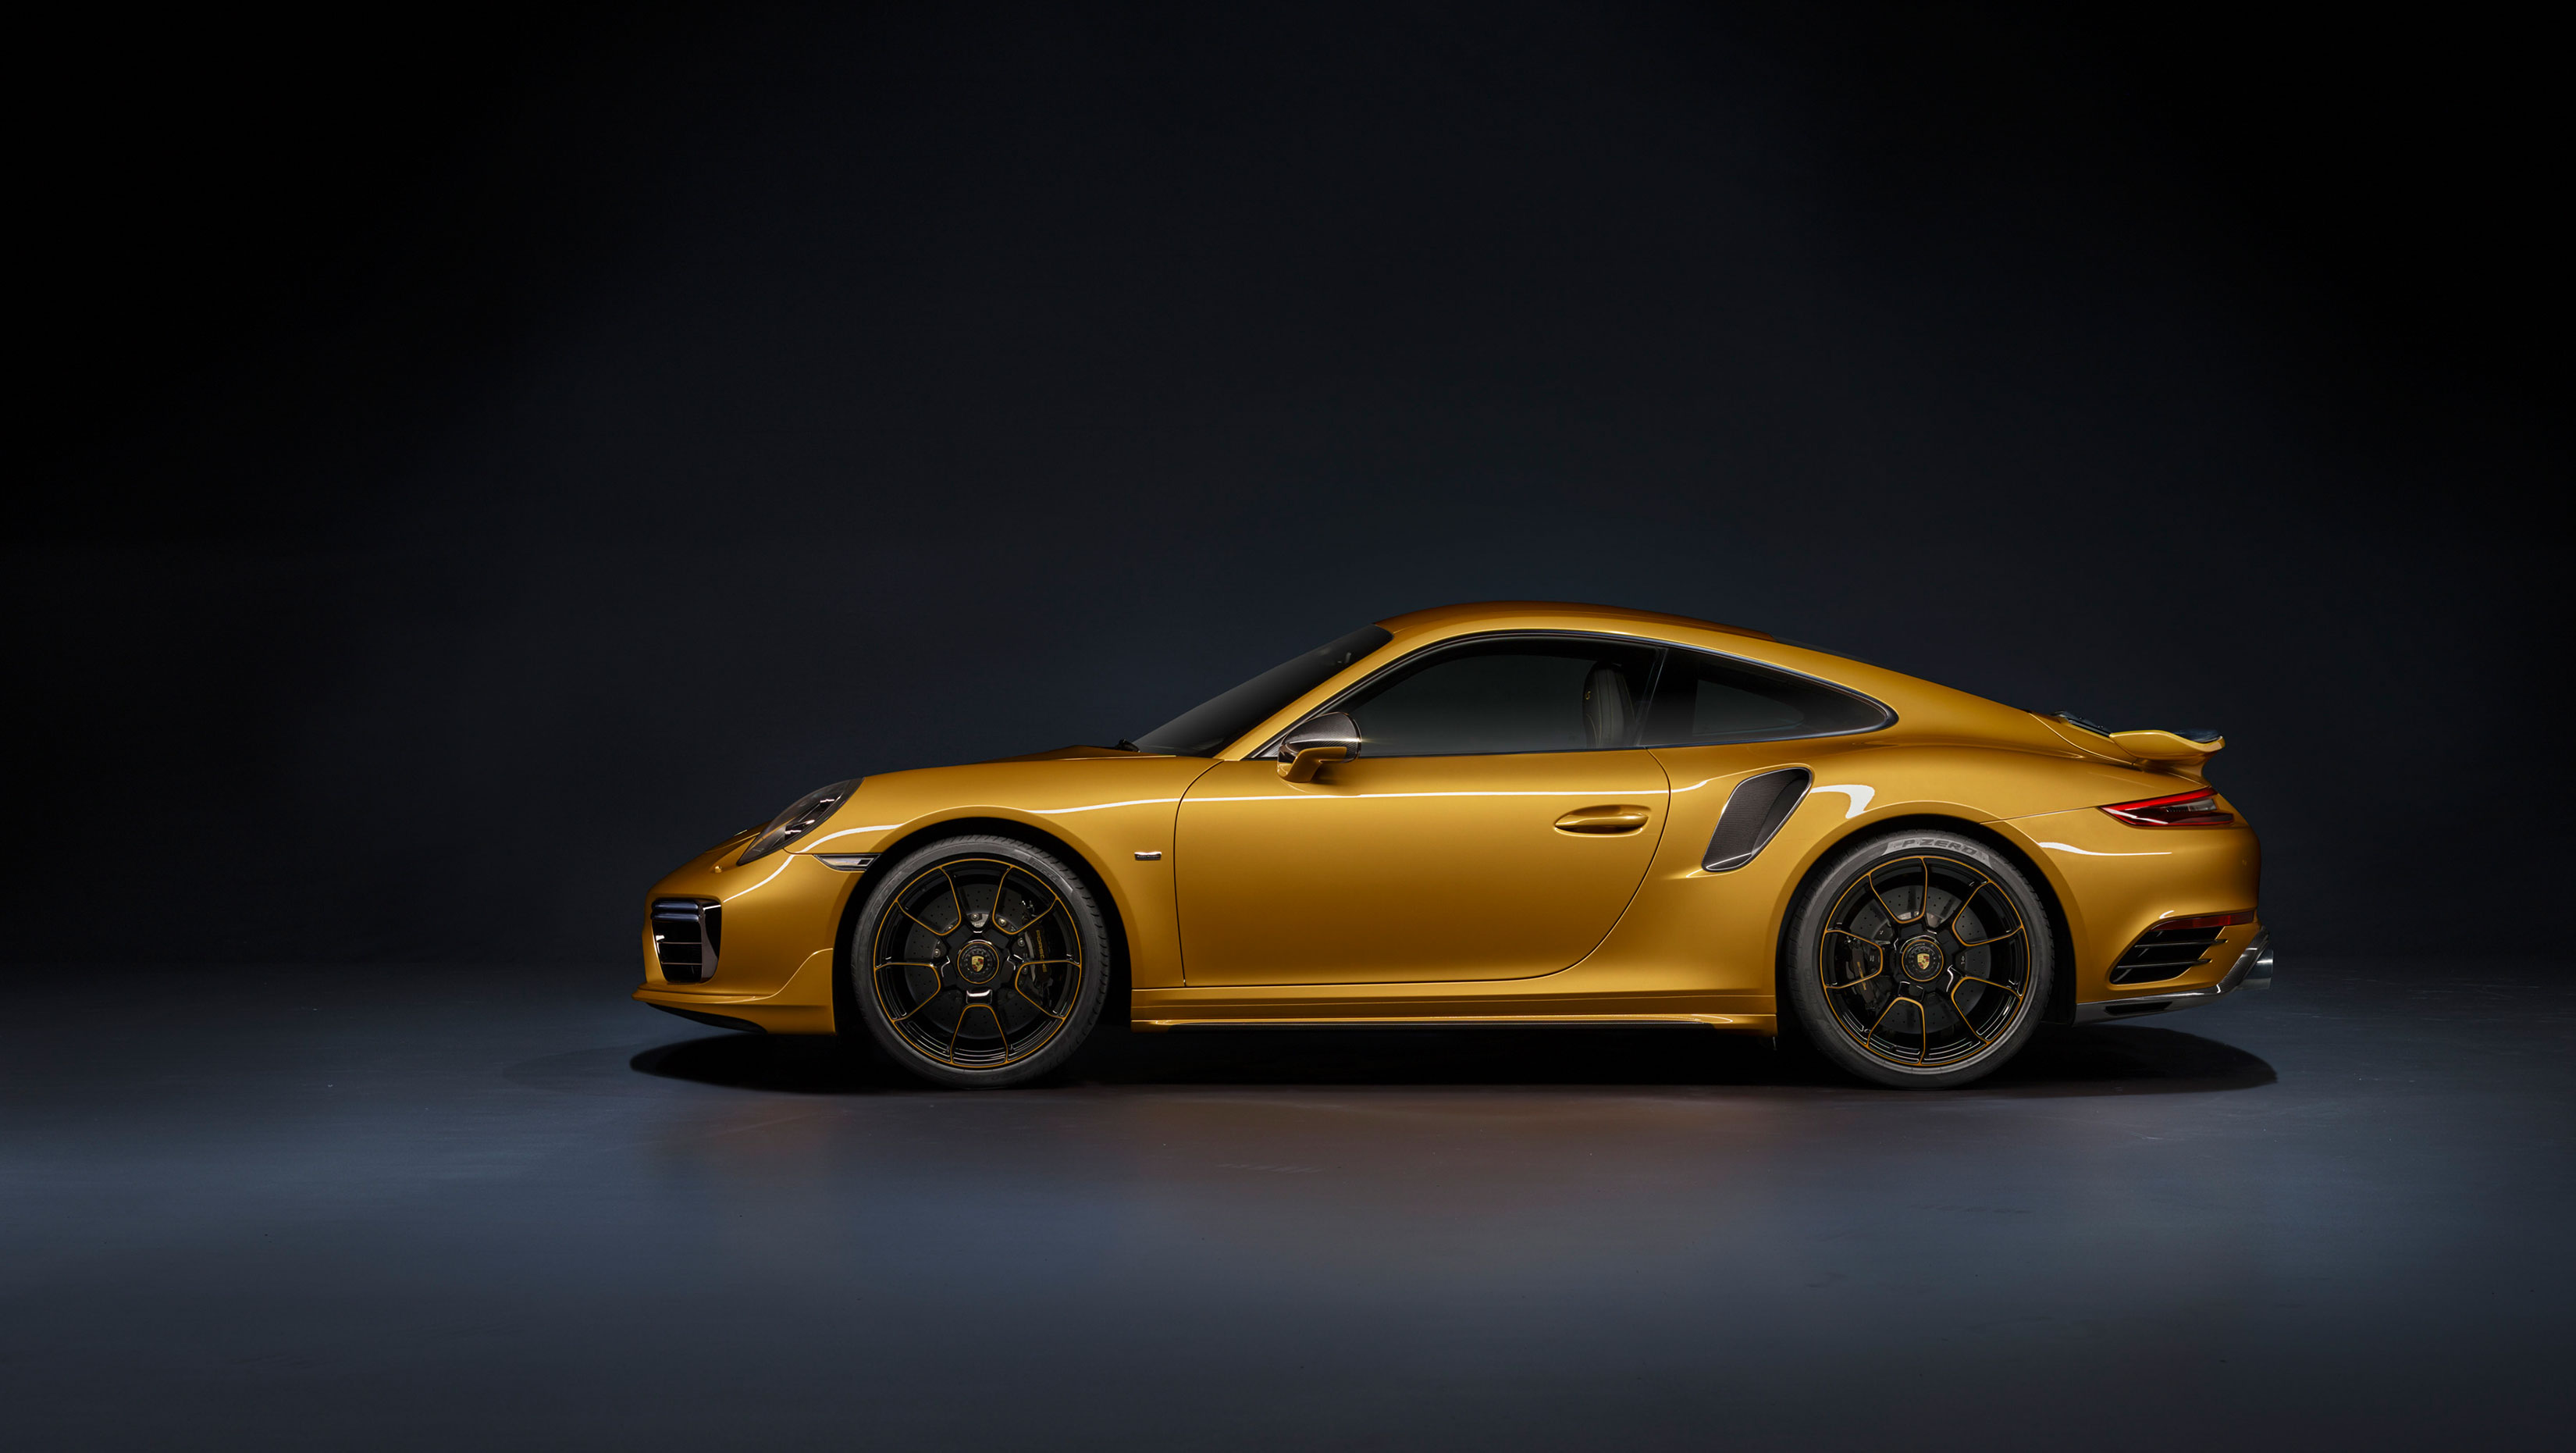 porsche 911 turbo s exclusive series the car the watch and the bags